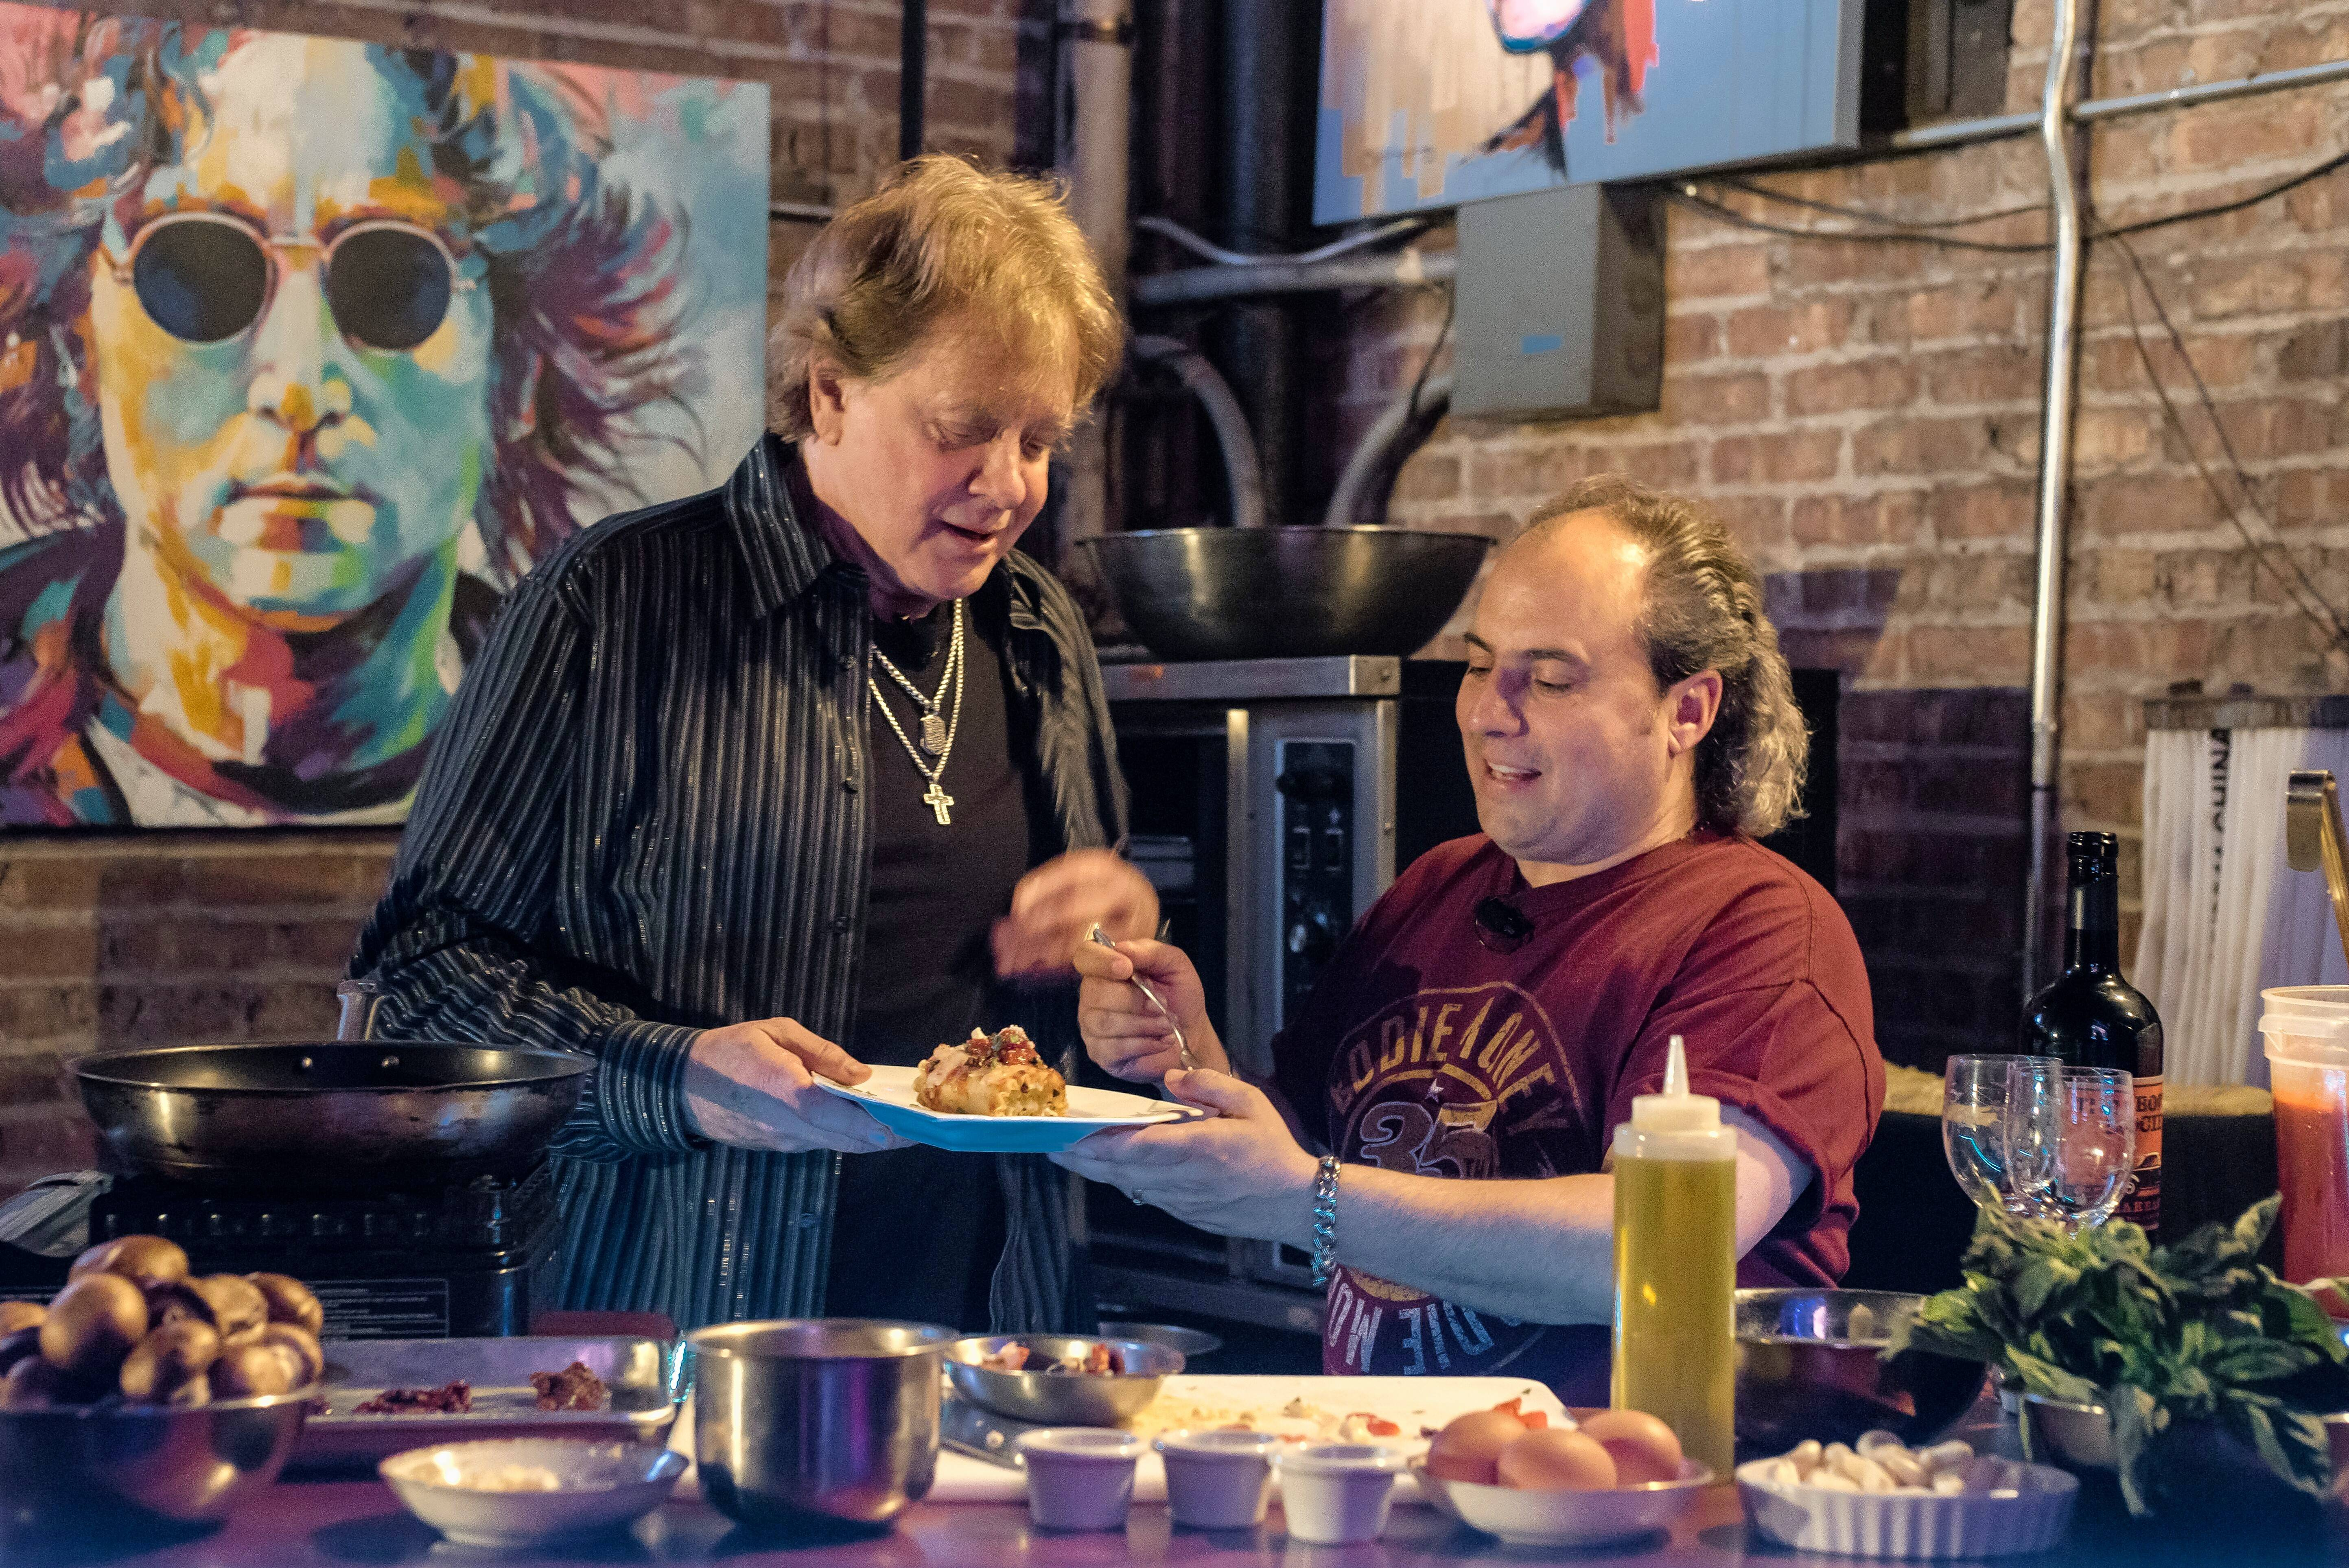 Singer Eddie money and Arcada Theatre owner Ron Onesti make vegetable lasagna prior to Money's show.